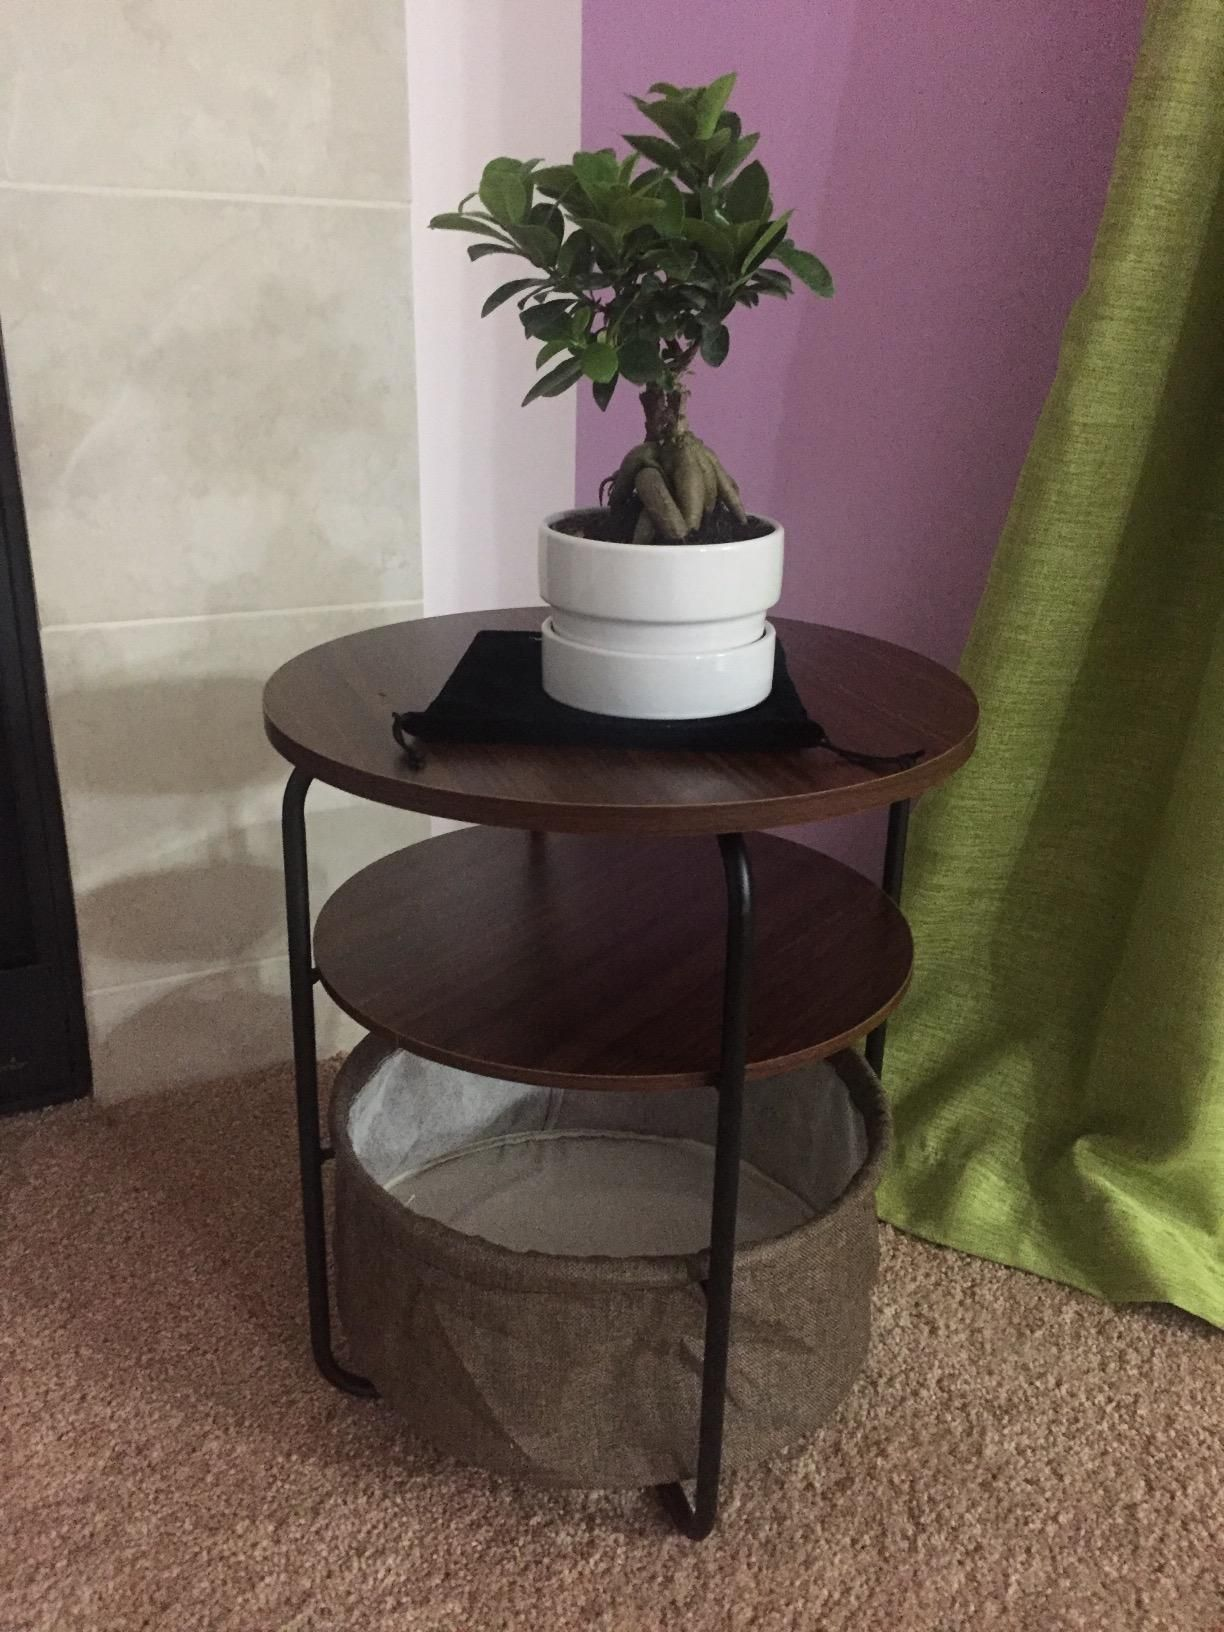 Amazon lifewit 3 tier round side end table with storage amazon lifewit 3 tier round side end table with storage basket geotapseo Choice Image